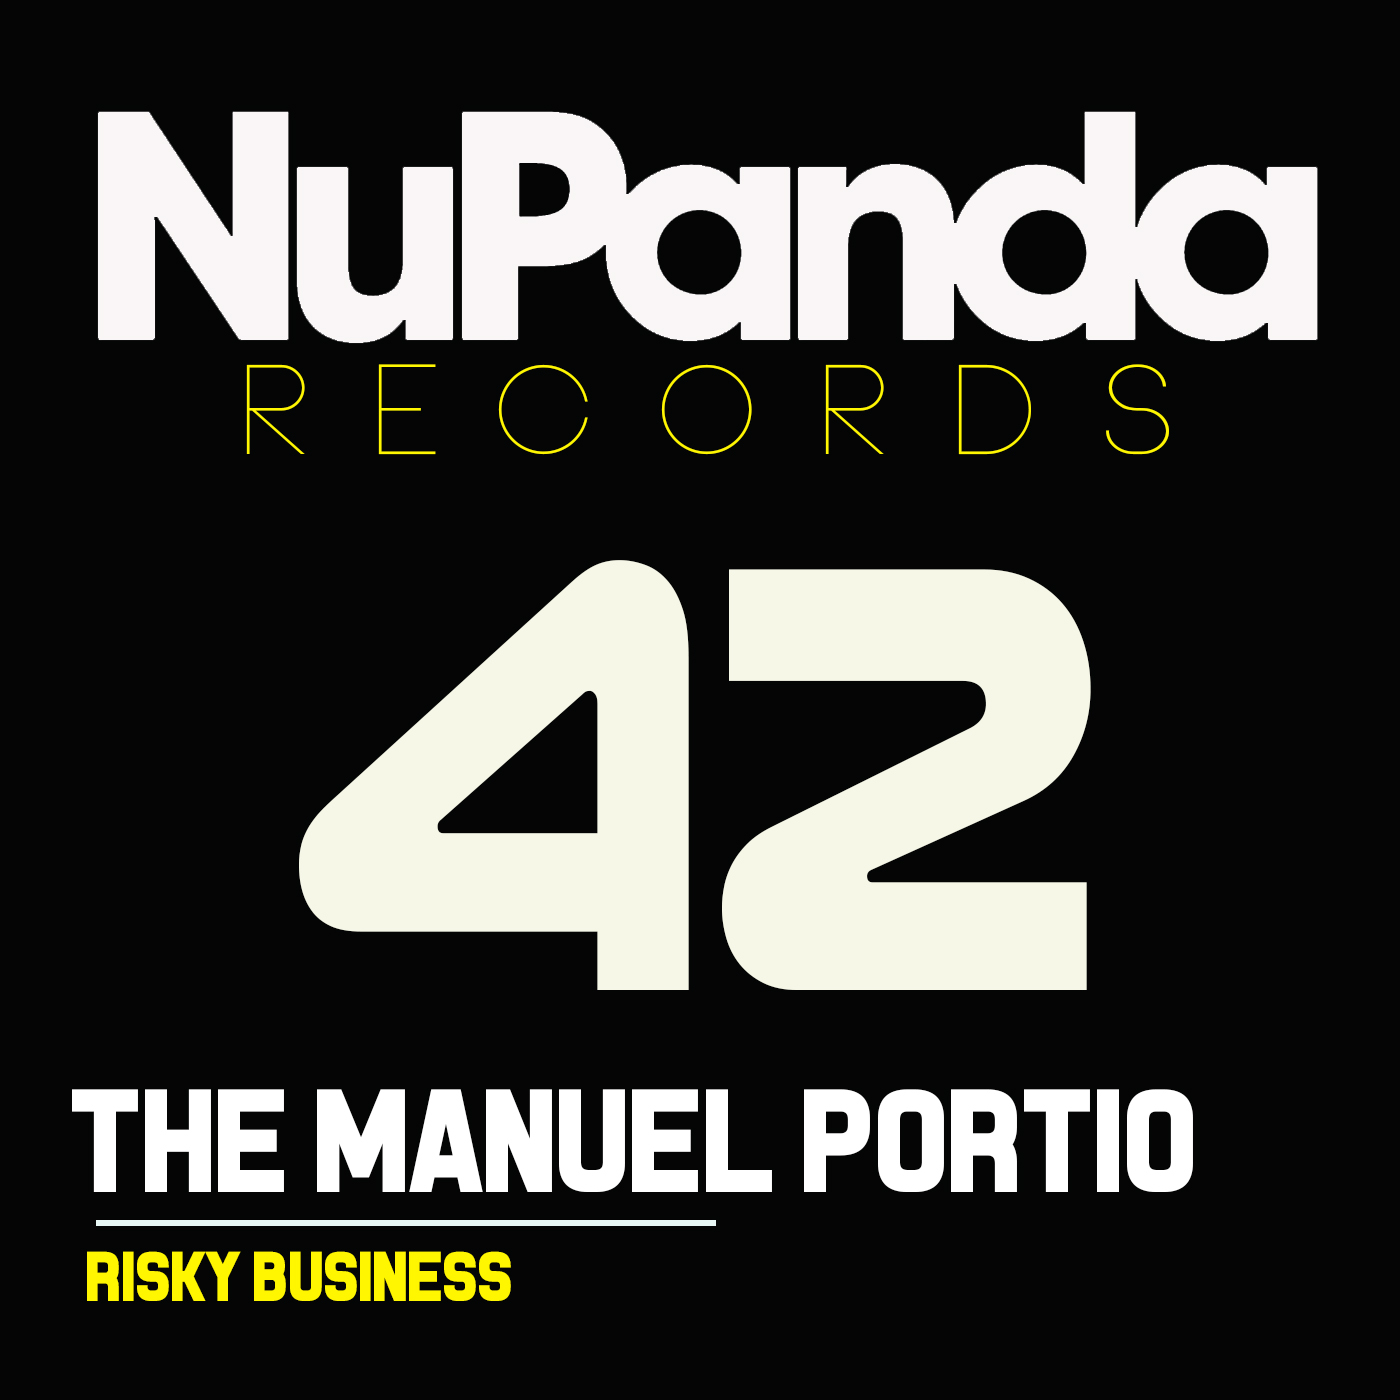 The Manuel Portio - Risky Business